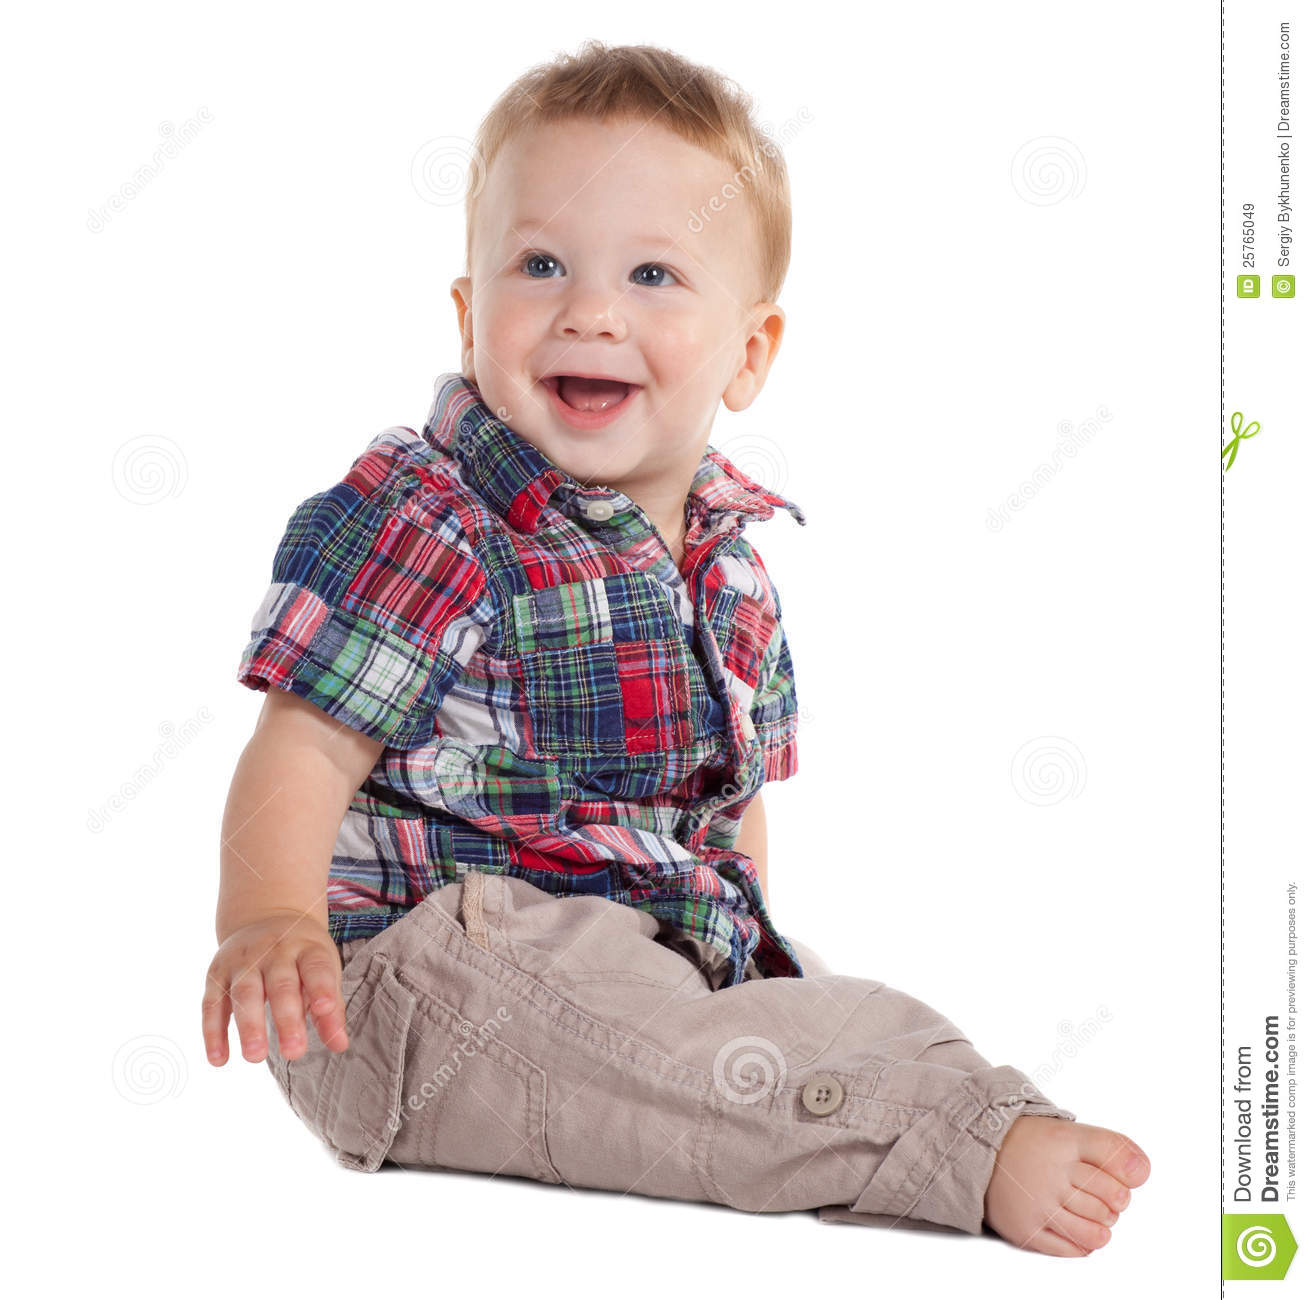 Smiling baby sitting on the floor on white